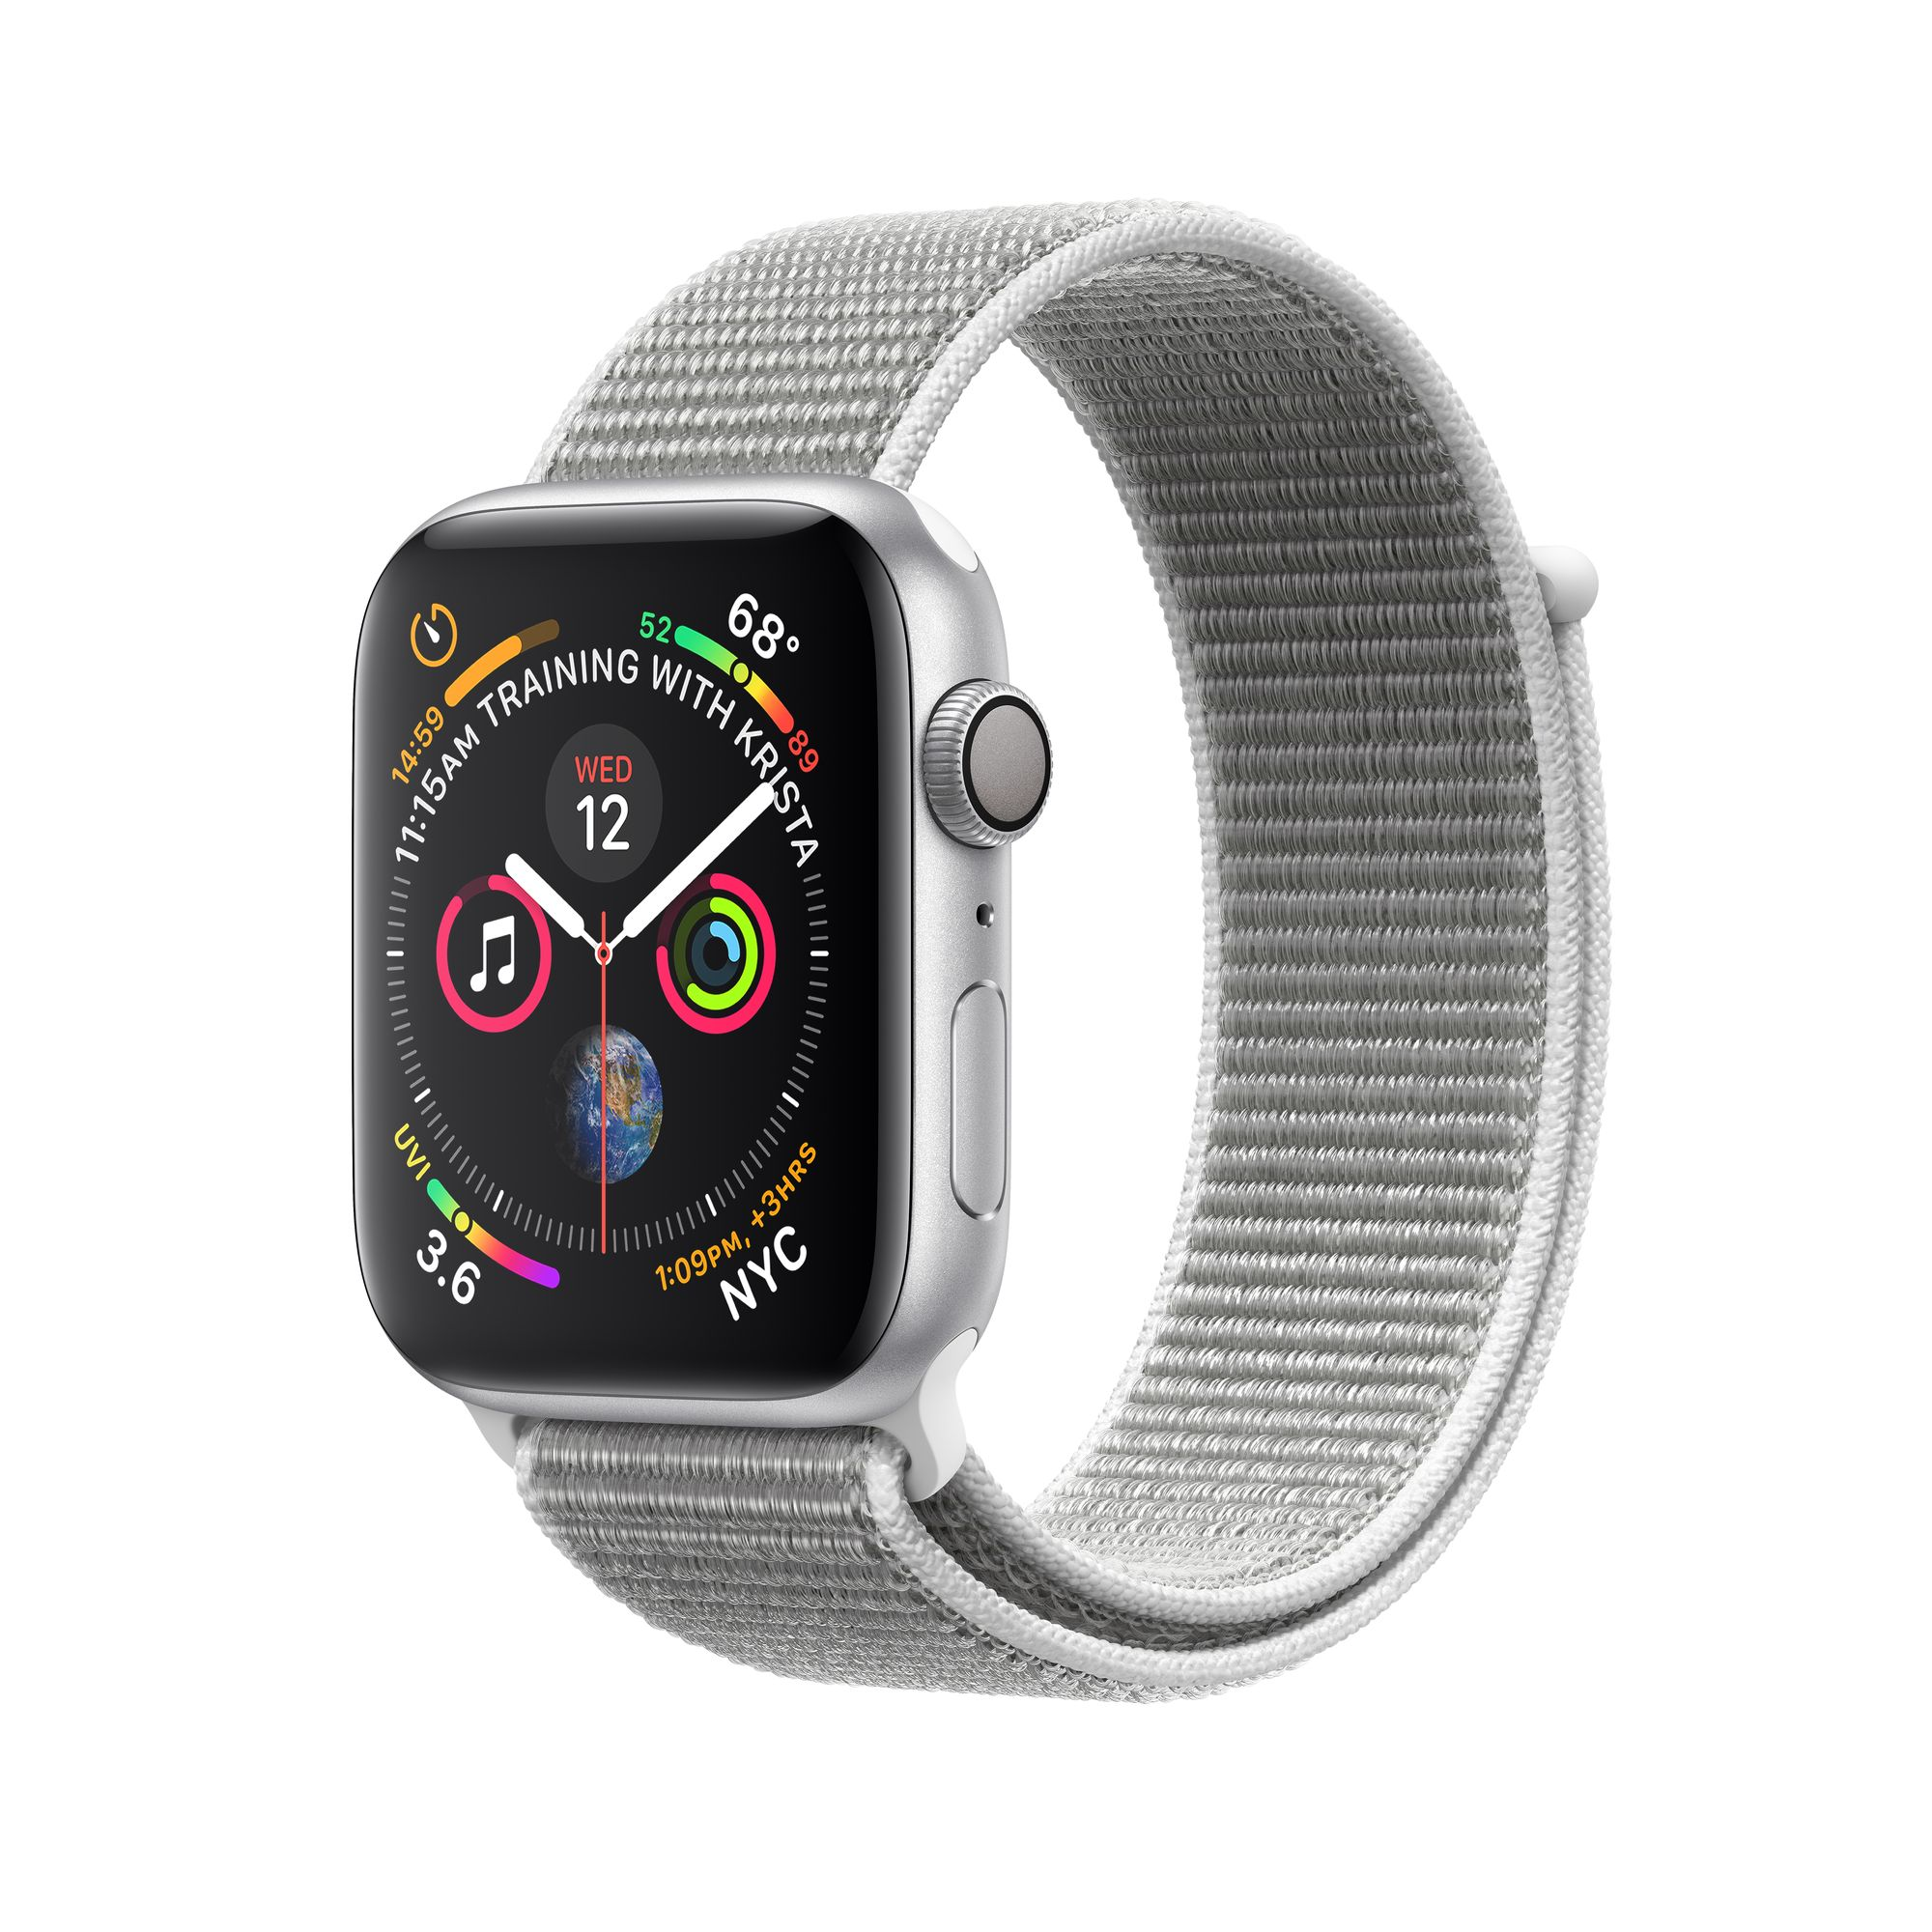 finest selection 8903d de20f Apple Watch Series 4 GPS, 40mm Silver Aluminum Case with Seashell Sport Loop